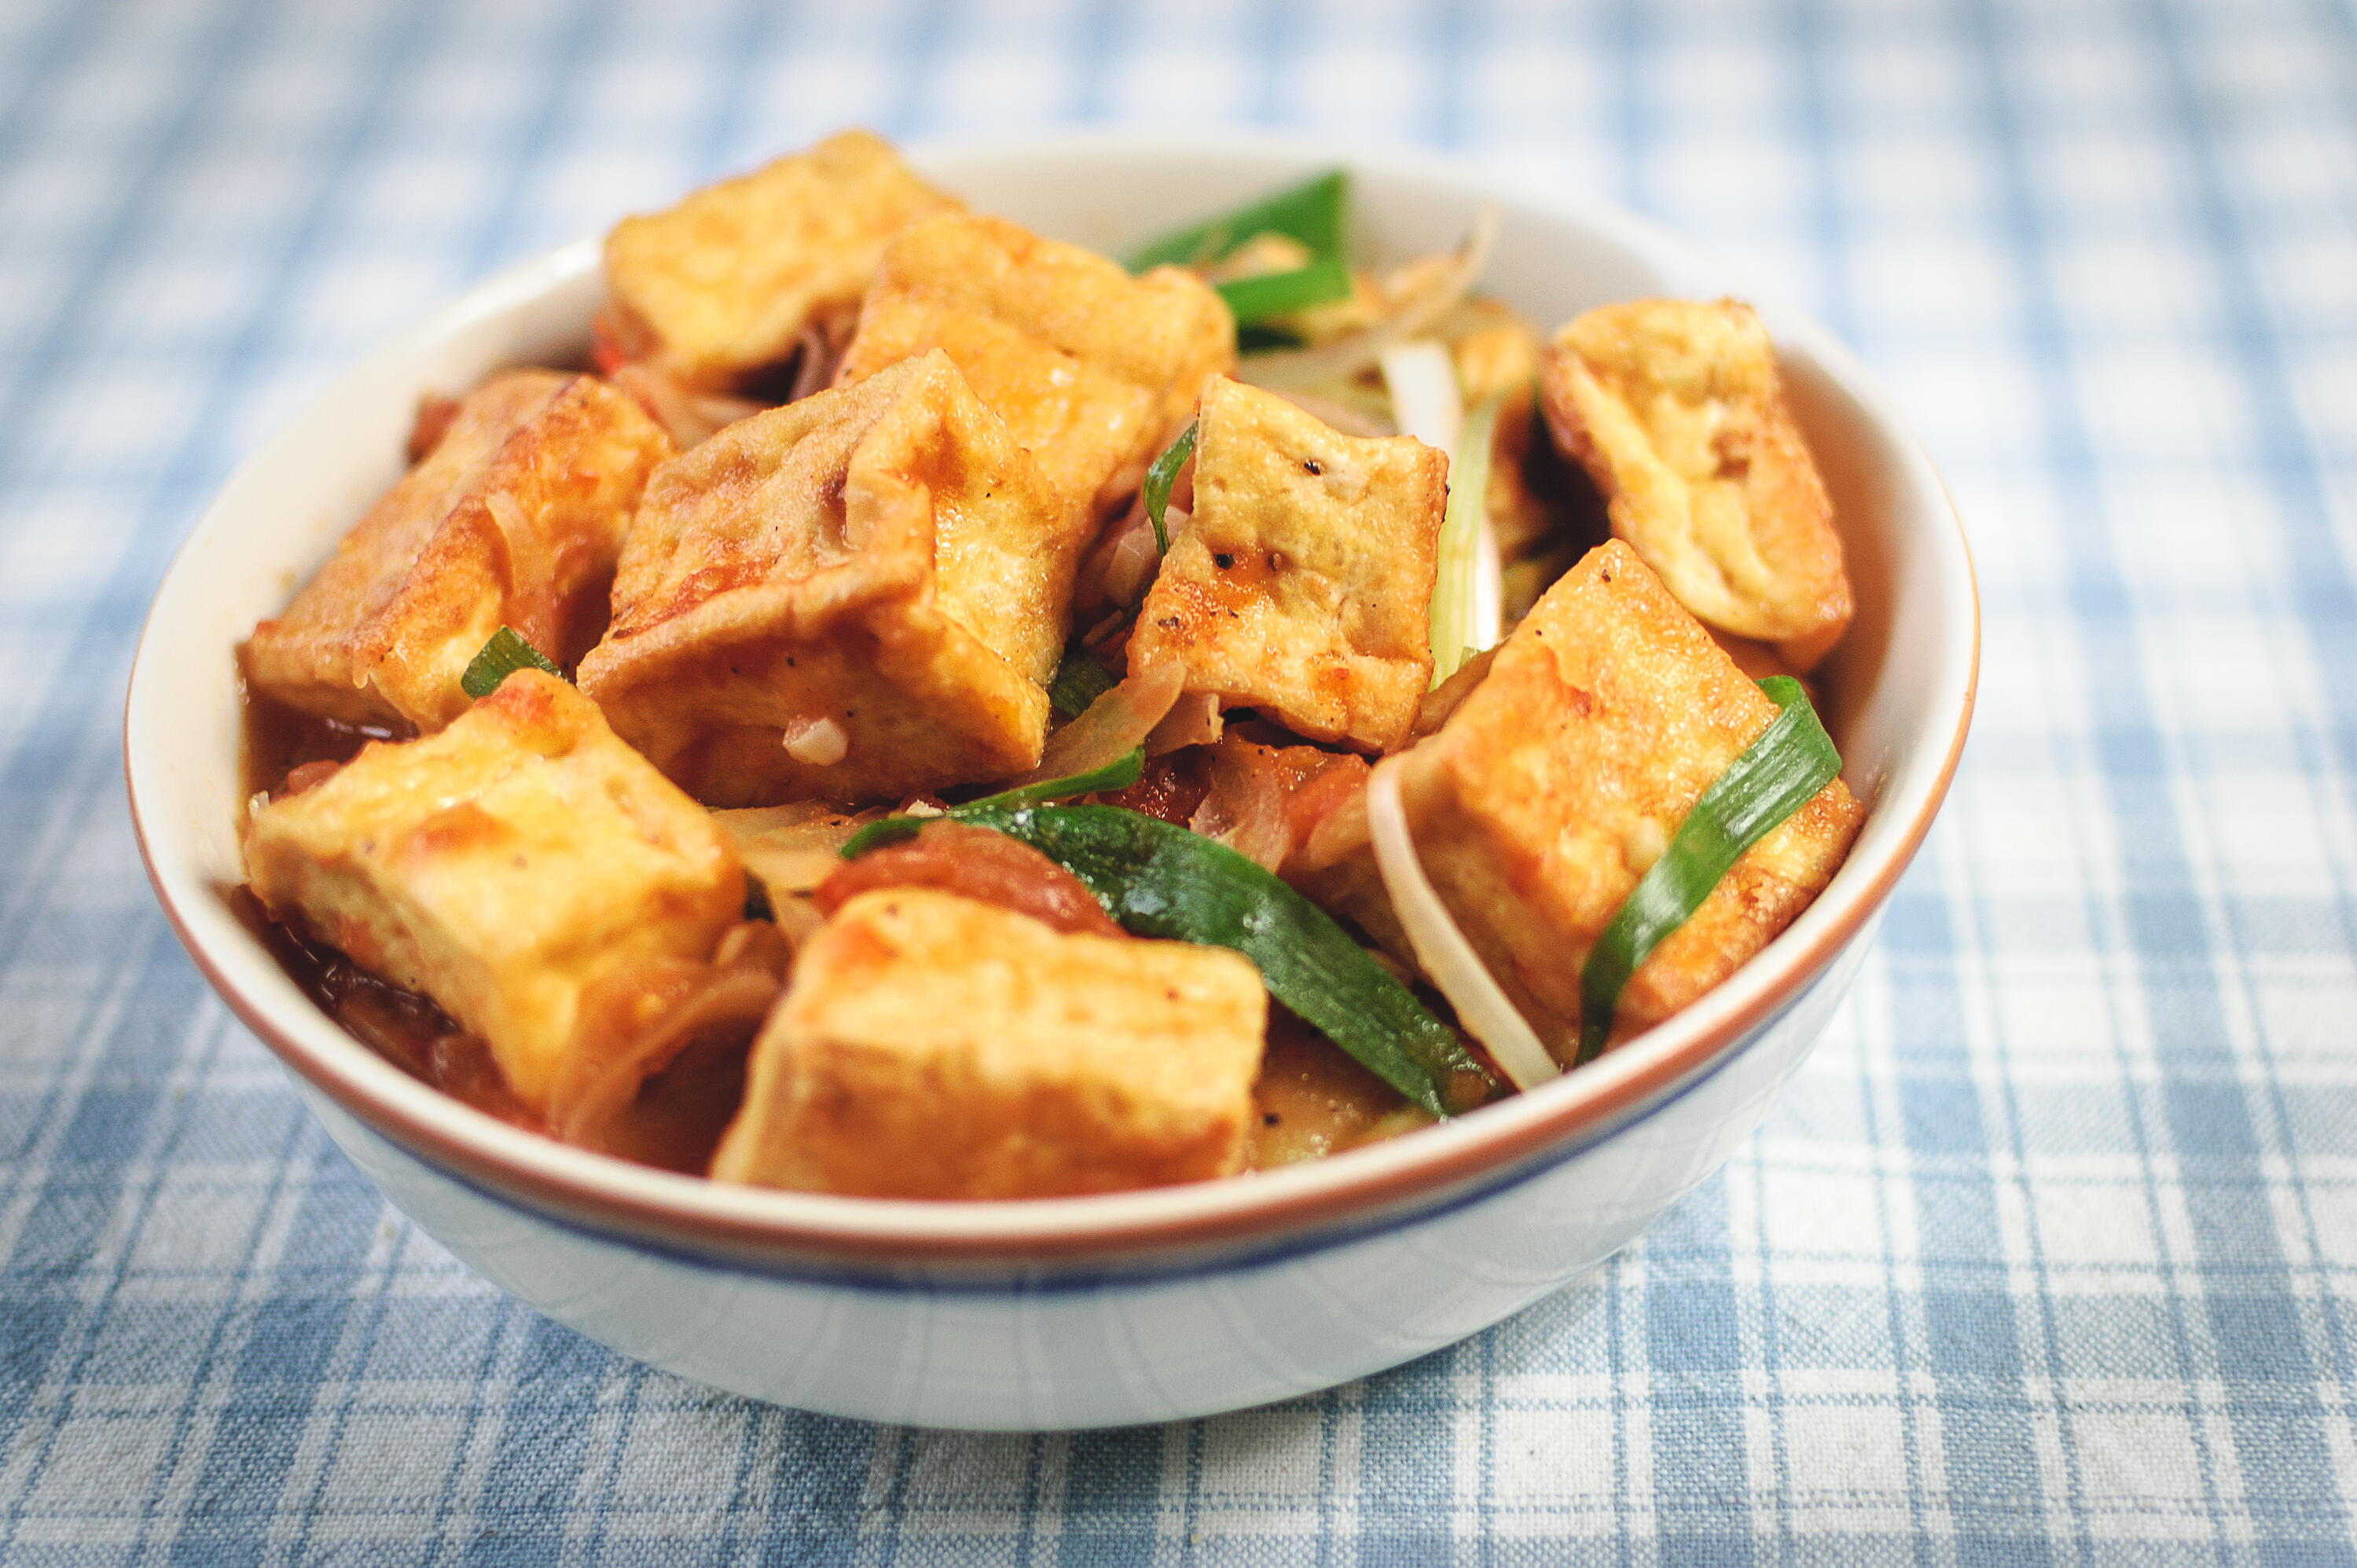 seared tofu in a bowl